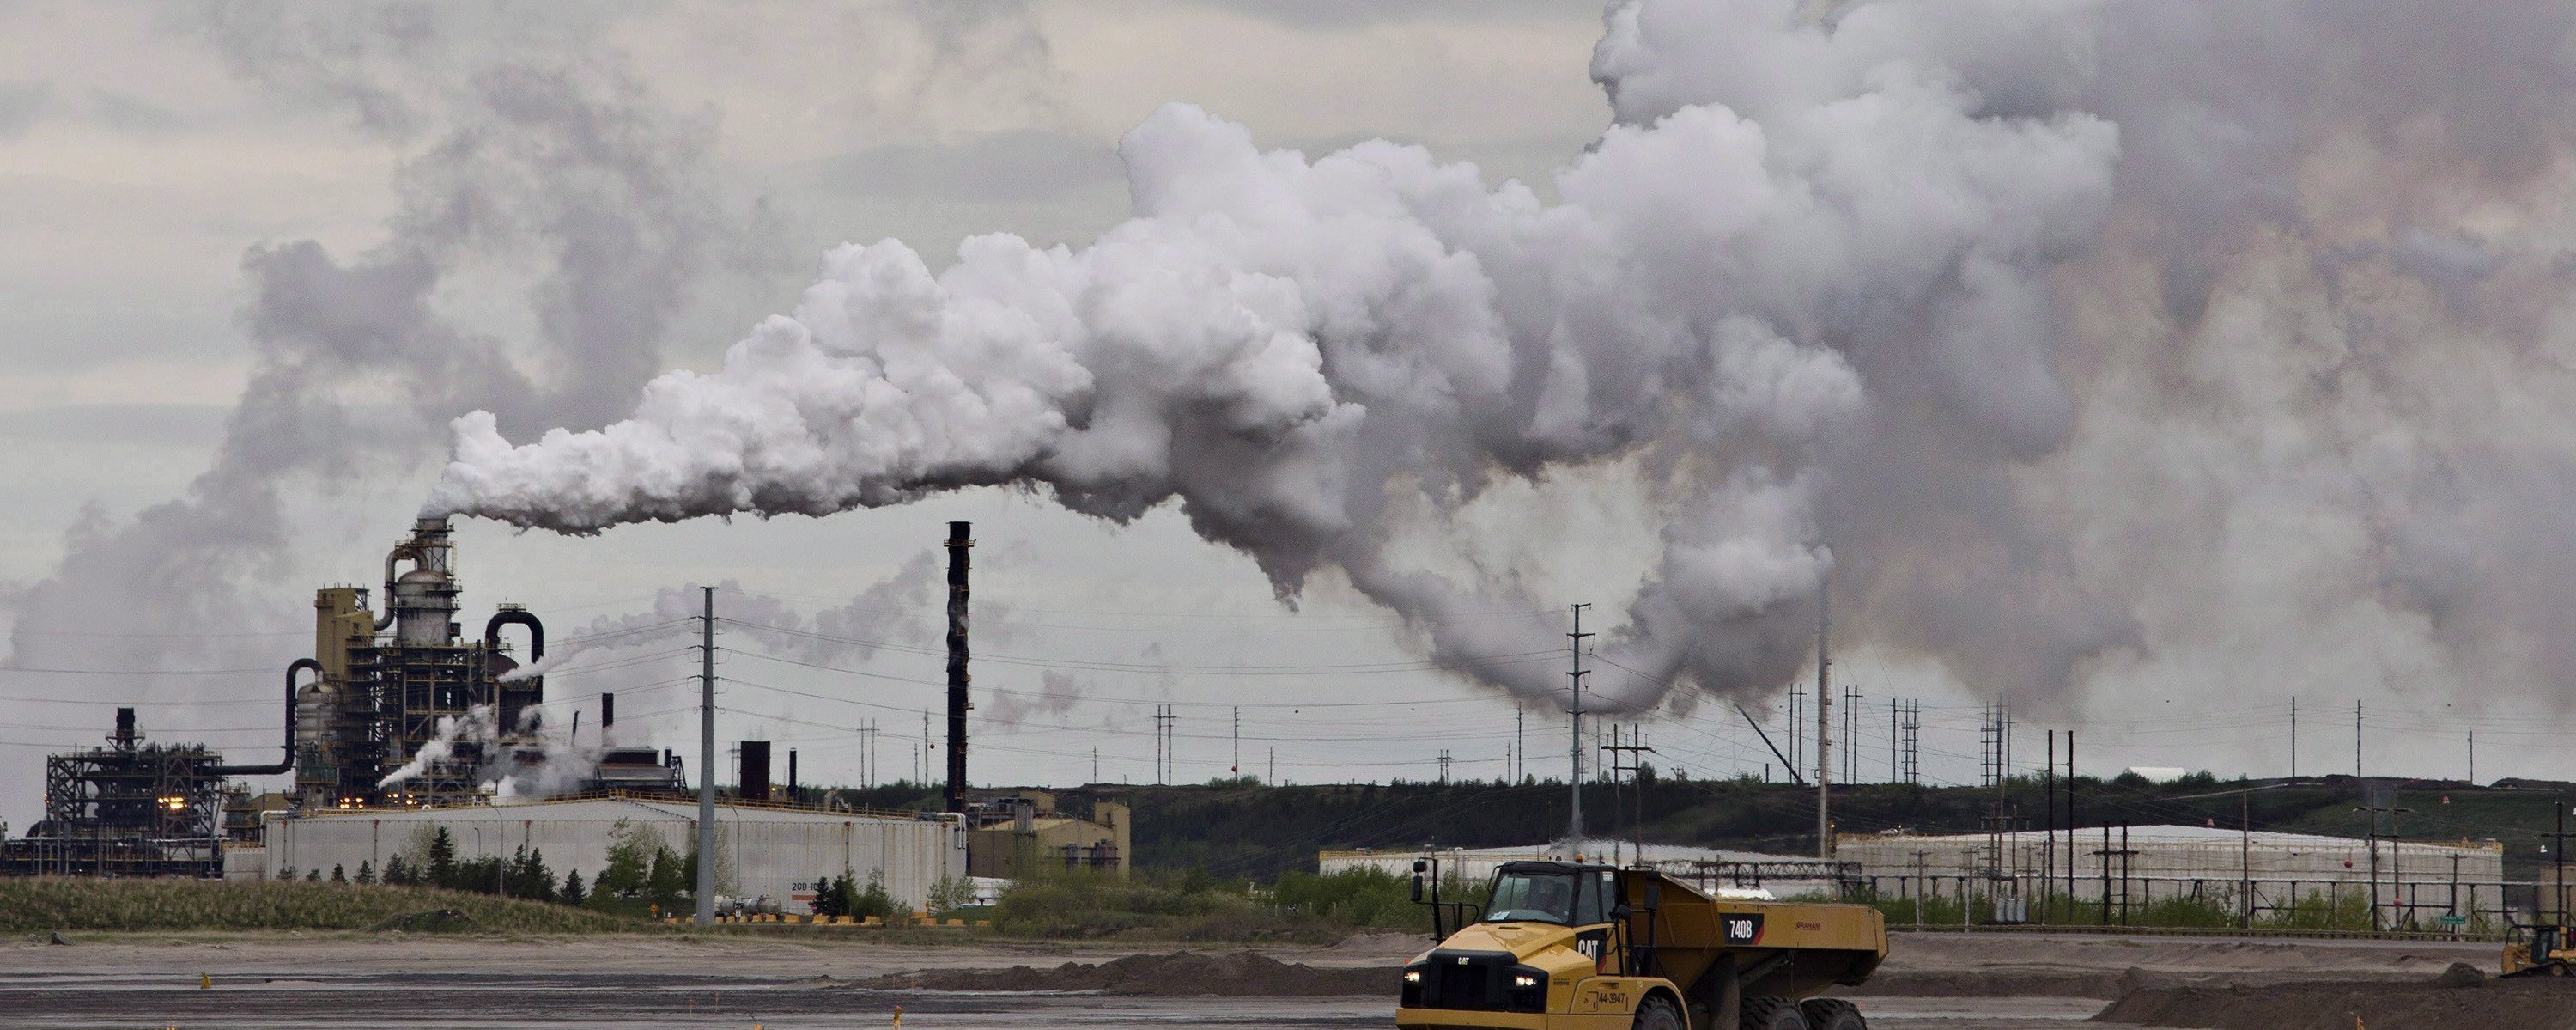 Alberta Set to Double Carbon Tax Rate in Canada's Oil Heartland